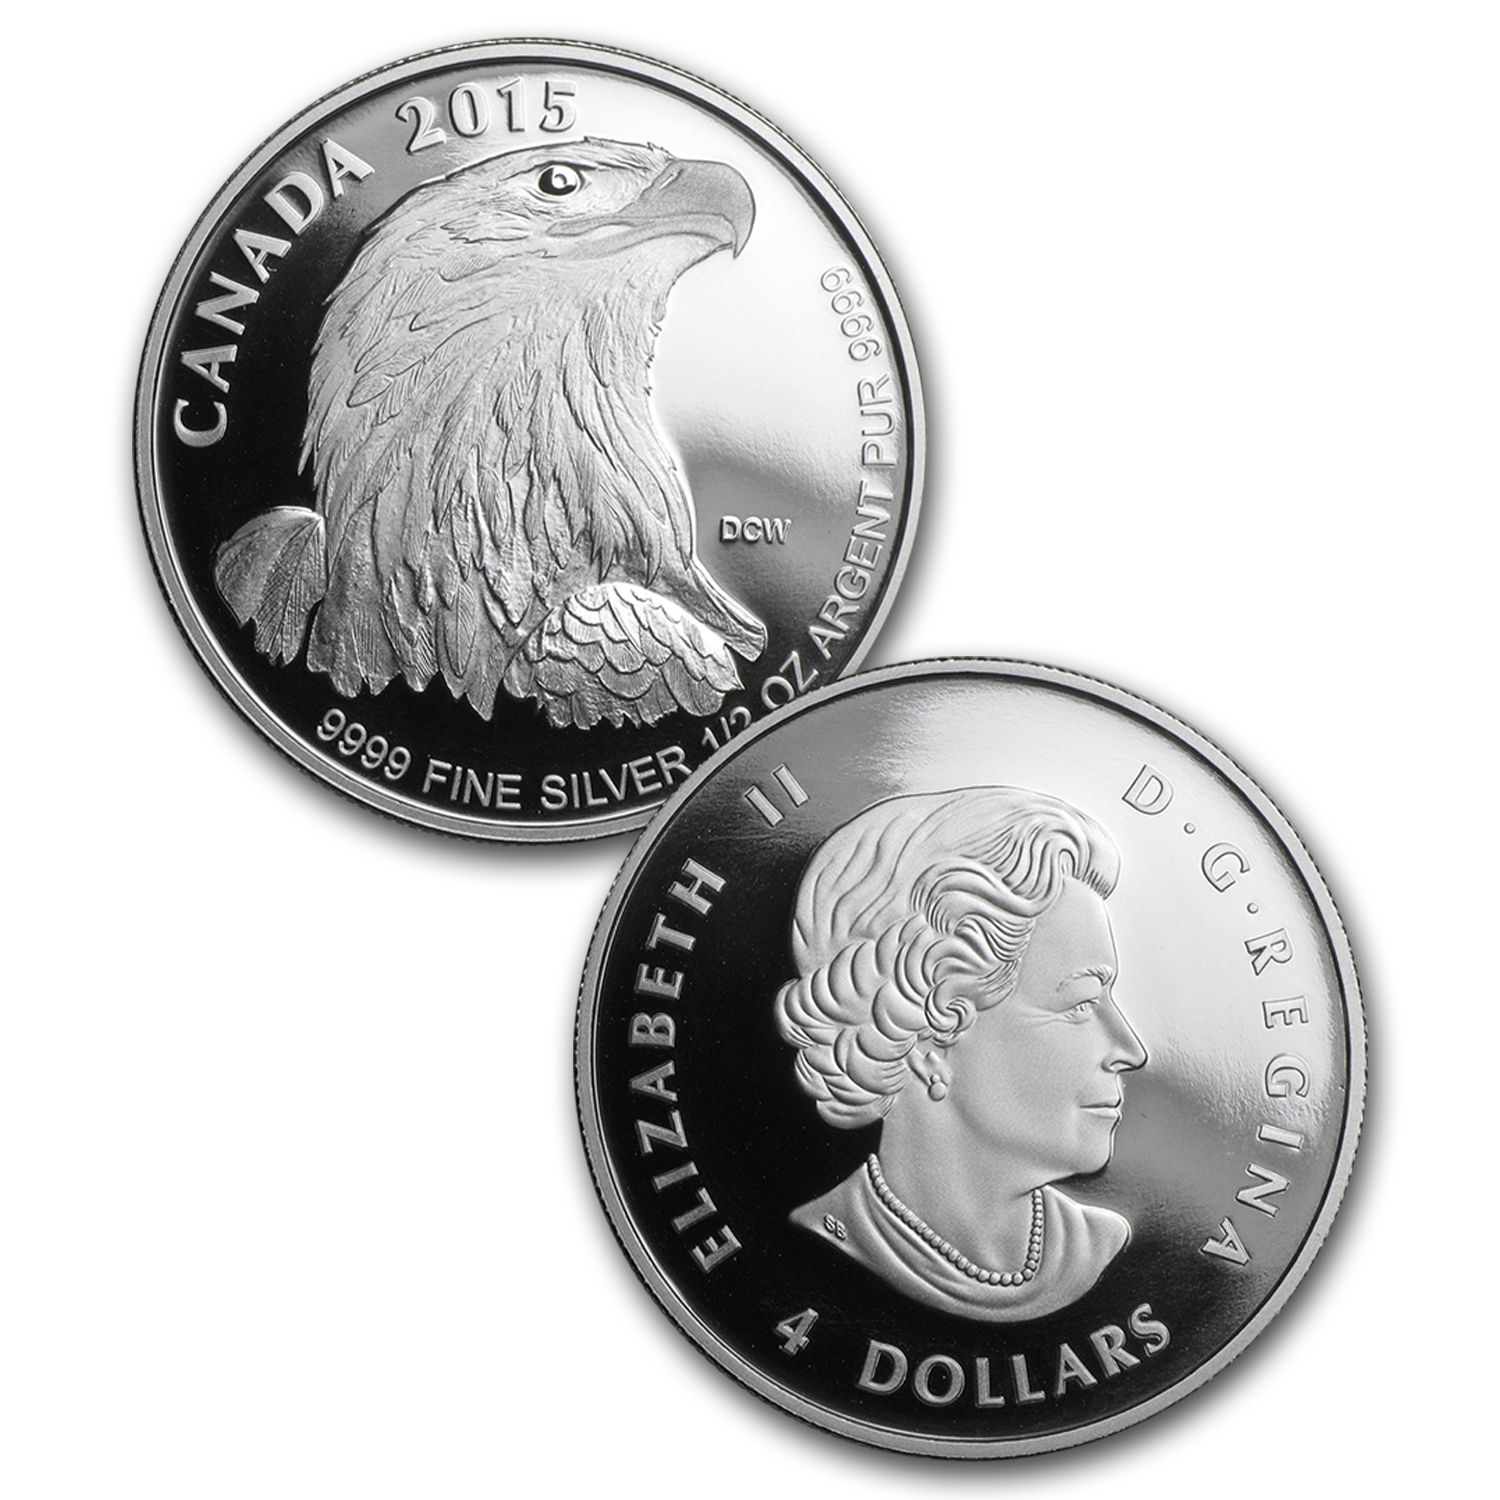 2015 Canada 4-Coin Proof Silver Bald Eagle Fractional Set